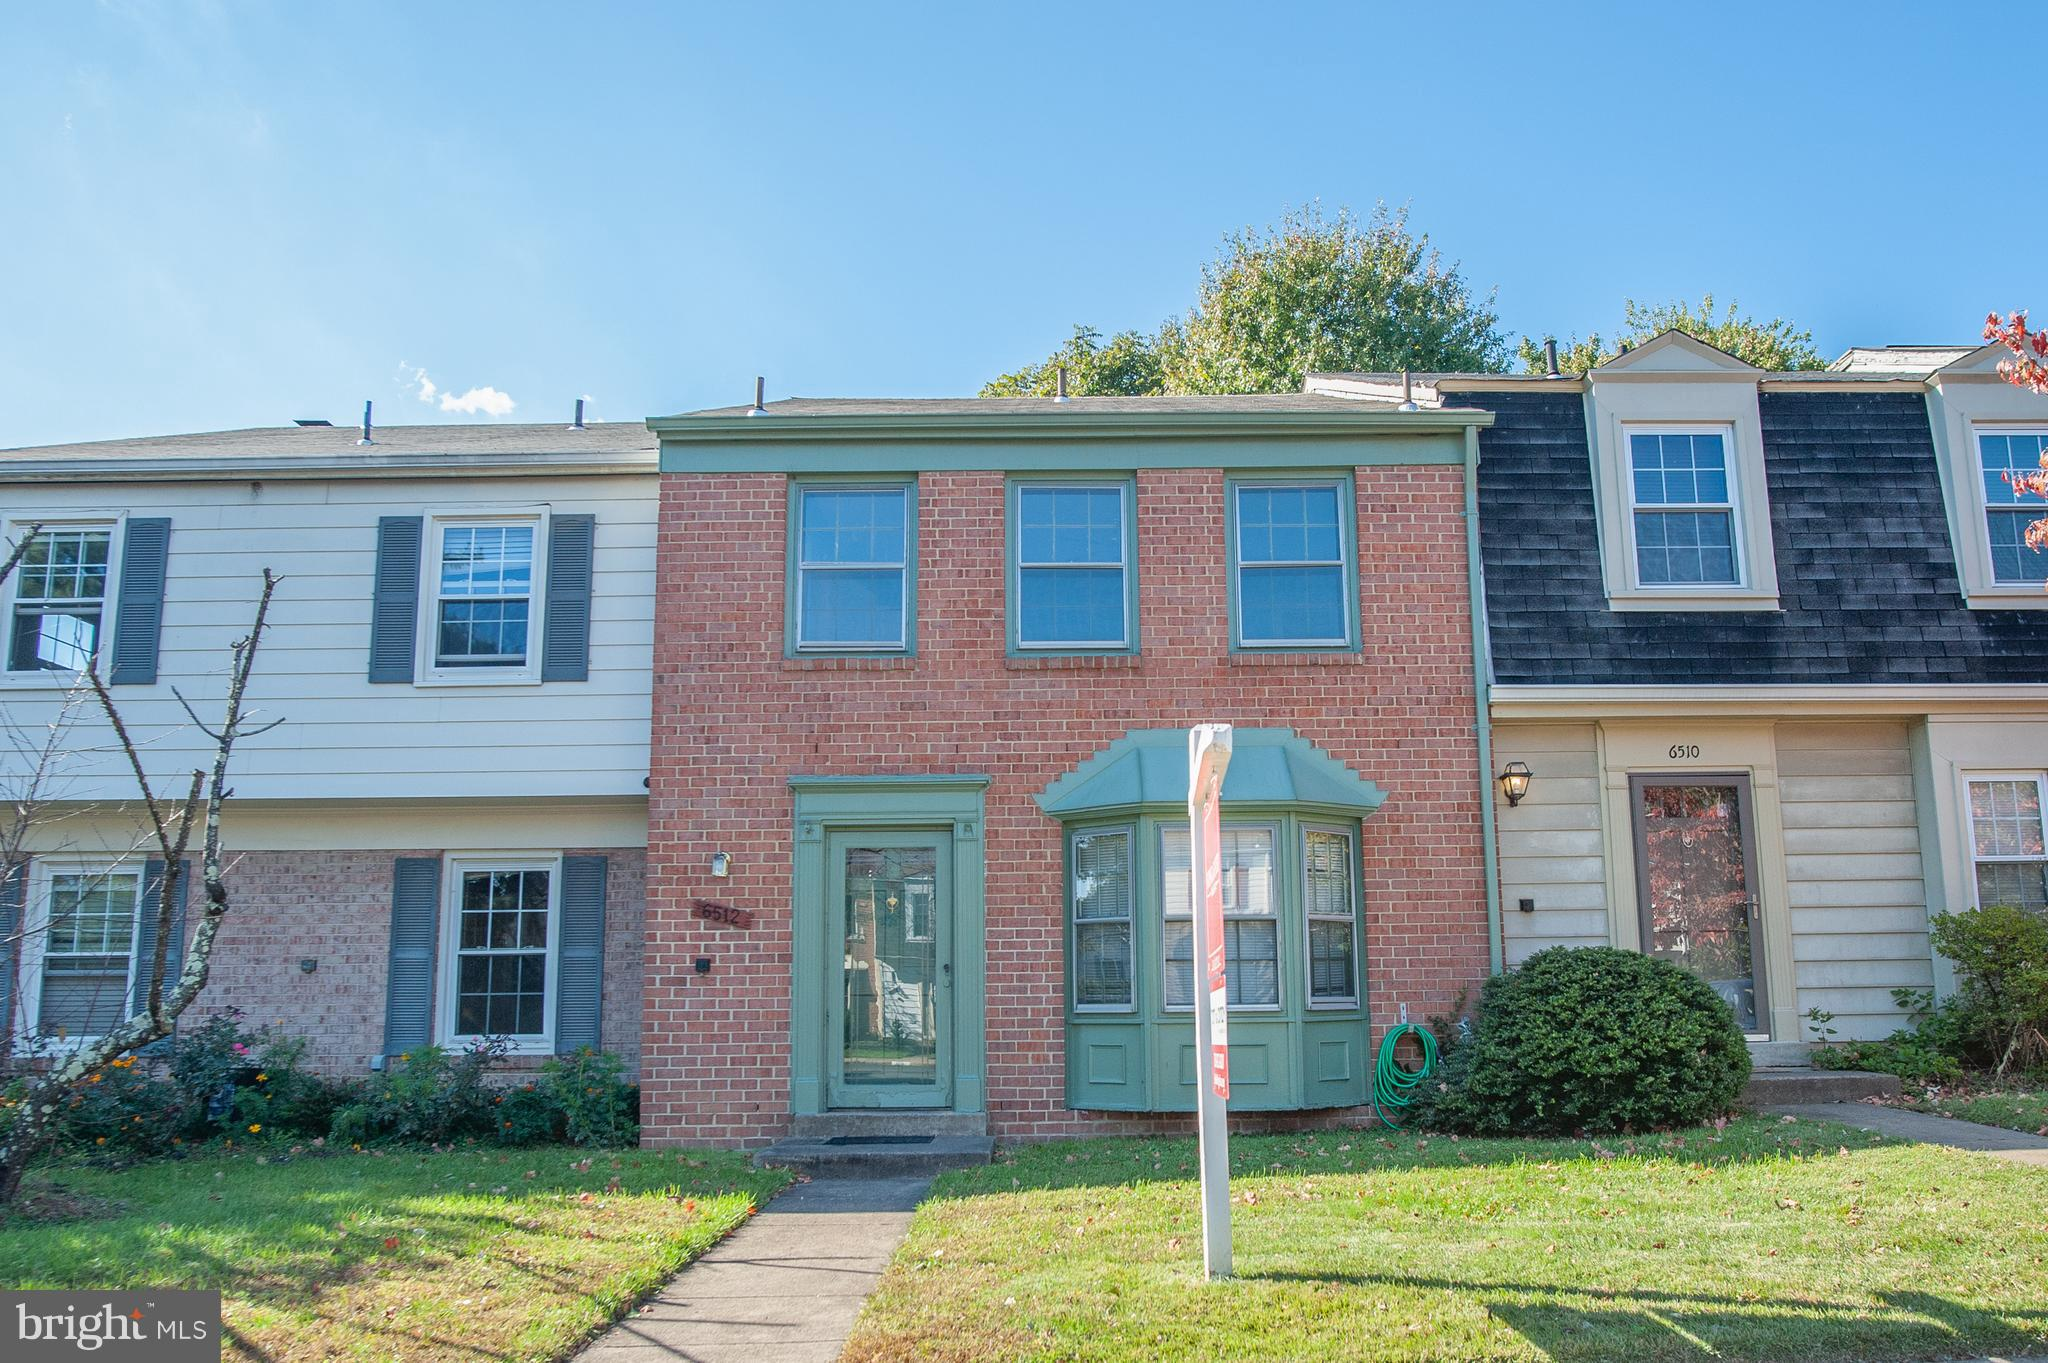 This one needs your imagination and vision combined with a great handyman/contractor with strong renovation skills! A future gem with lots of TLC. Good location near community pool and playgrounds, all major commuter routes, two Metro stations, Fort Belvoir, two Town Centers and more.